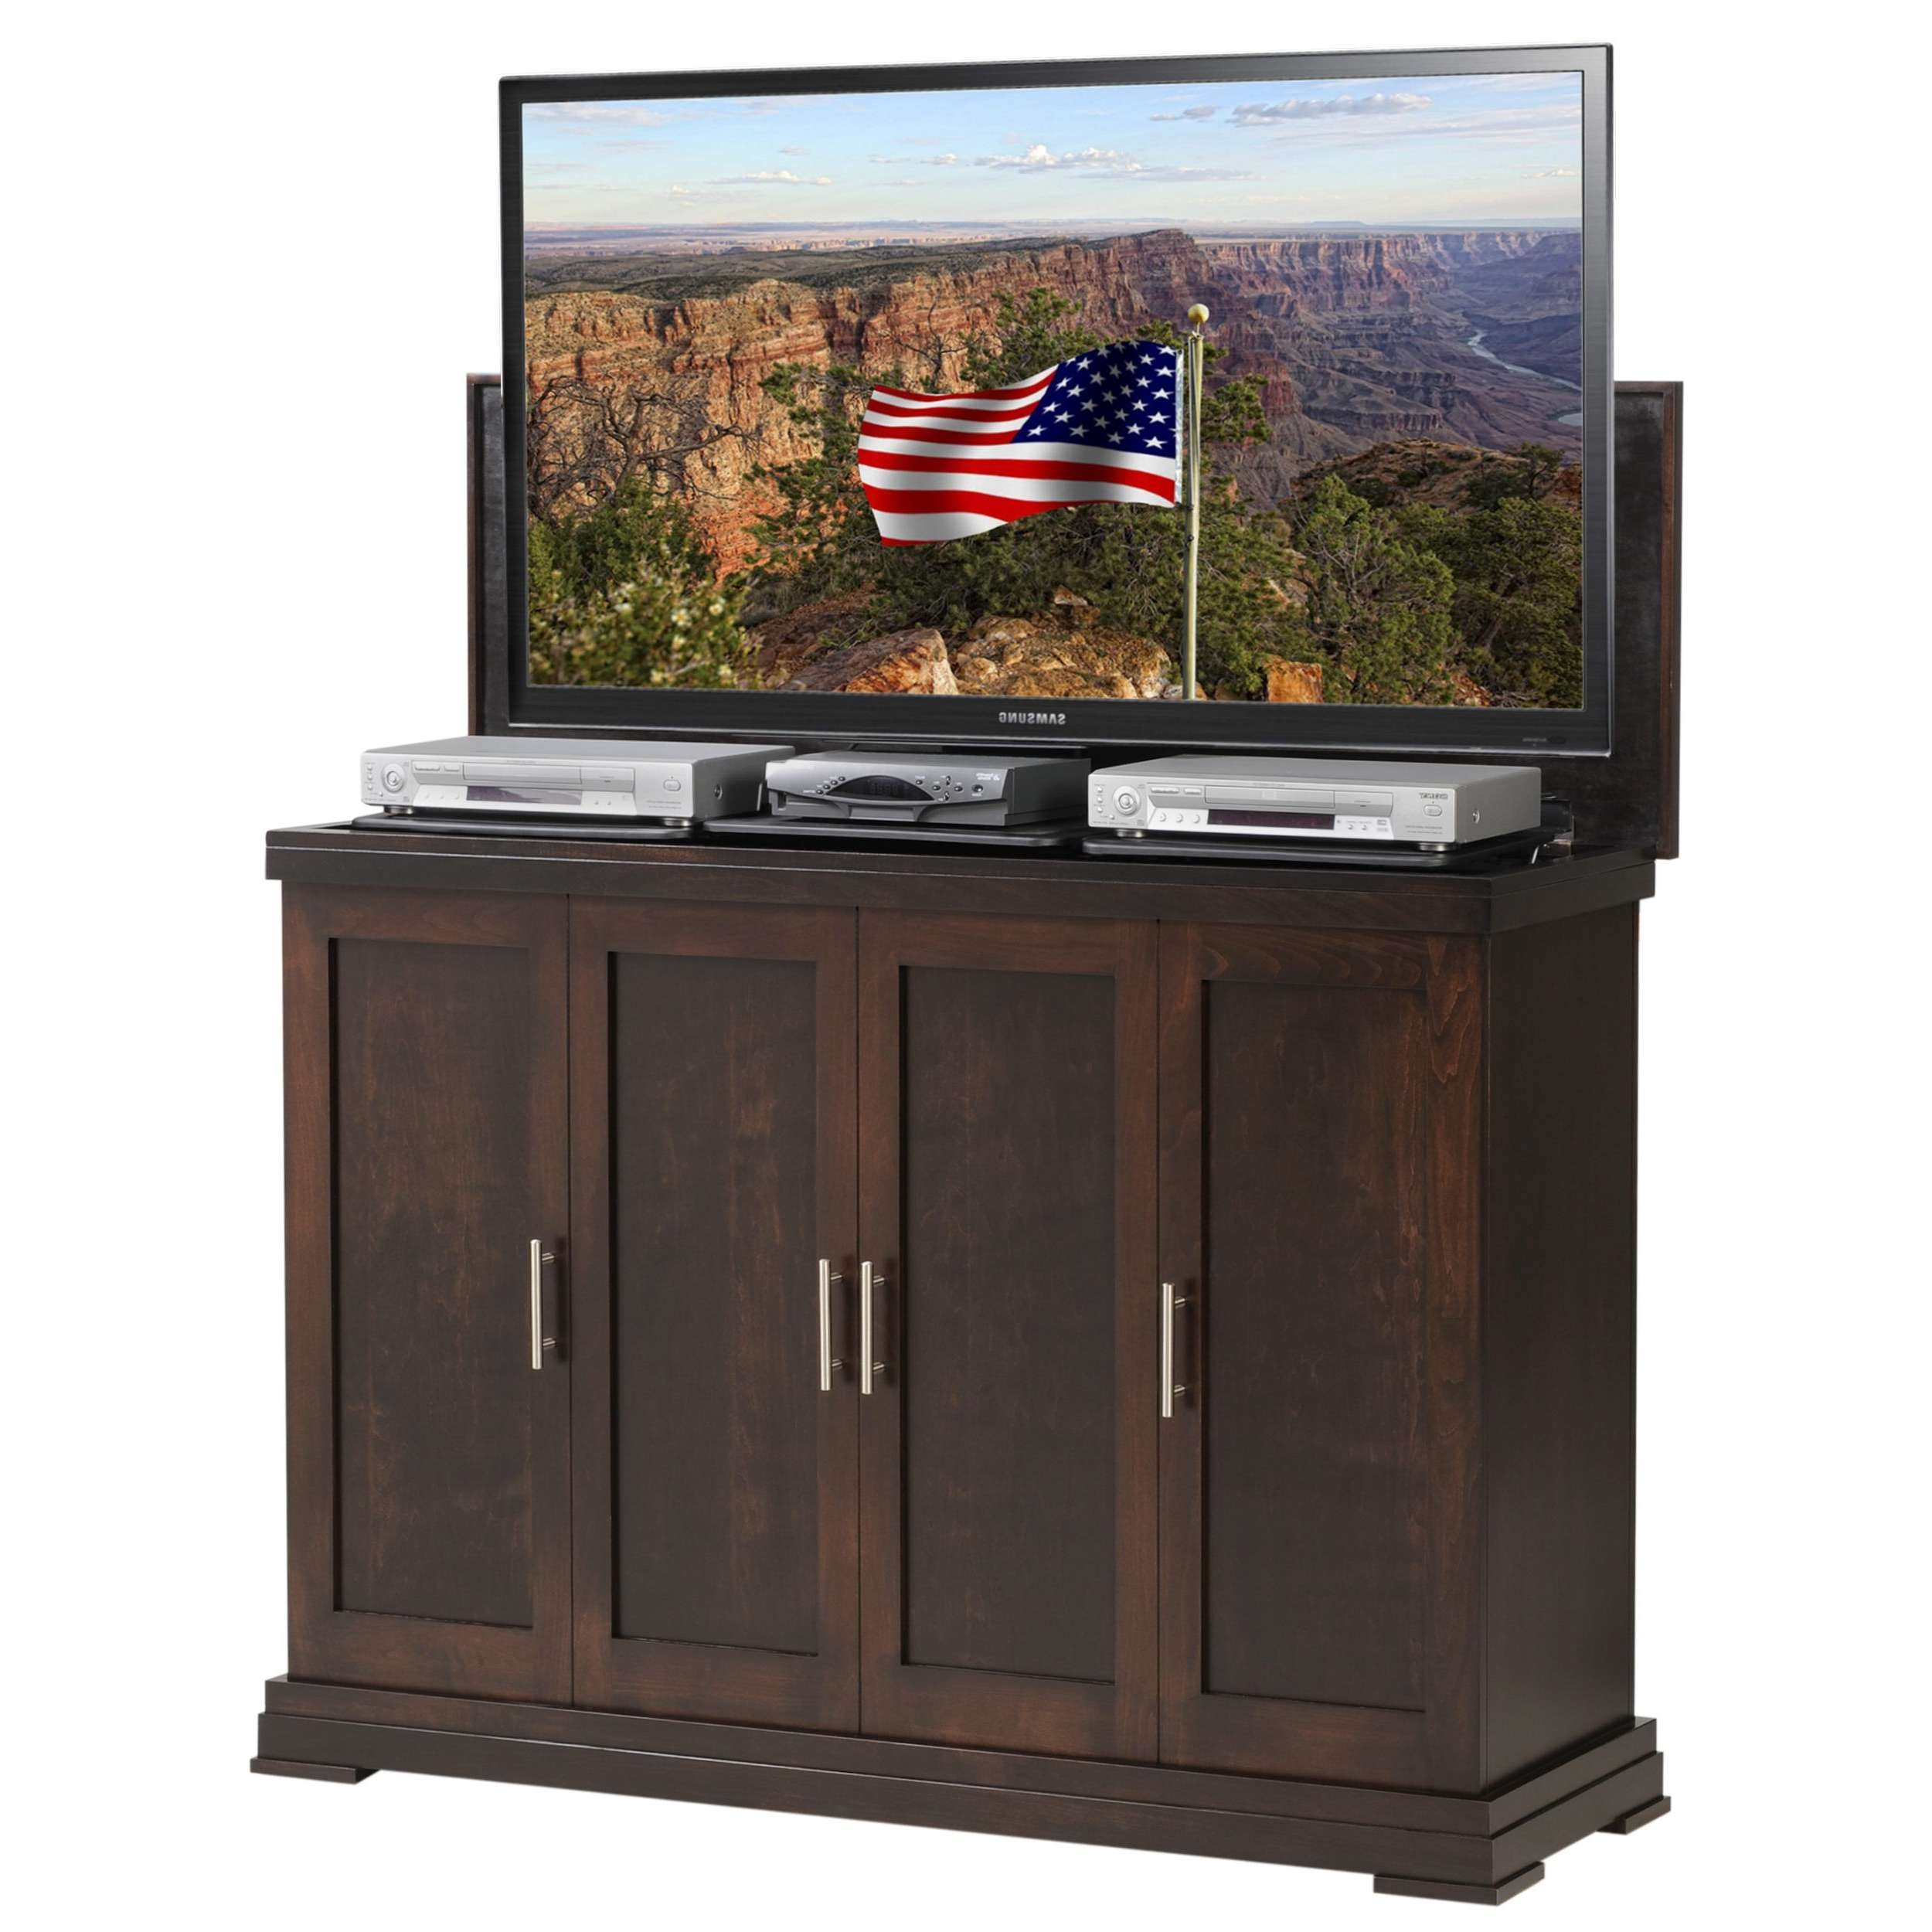 Tv : Gaming Storage Center Tv Stands Awesome Lockable Tv Stands Pertaining To Lockable Tv Stands (View 9 of 20)